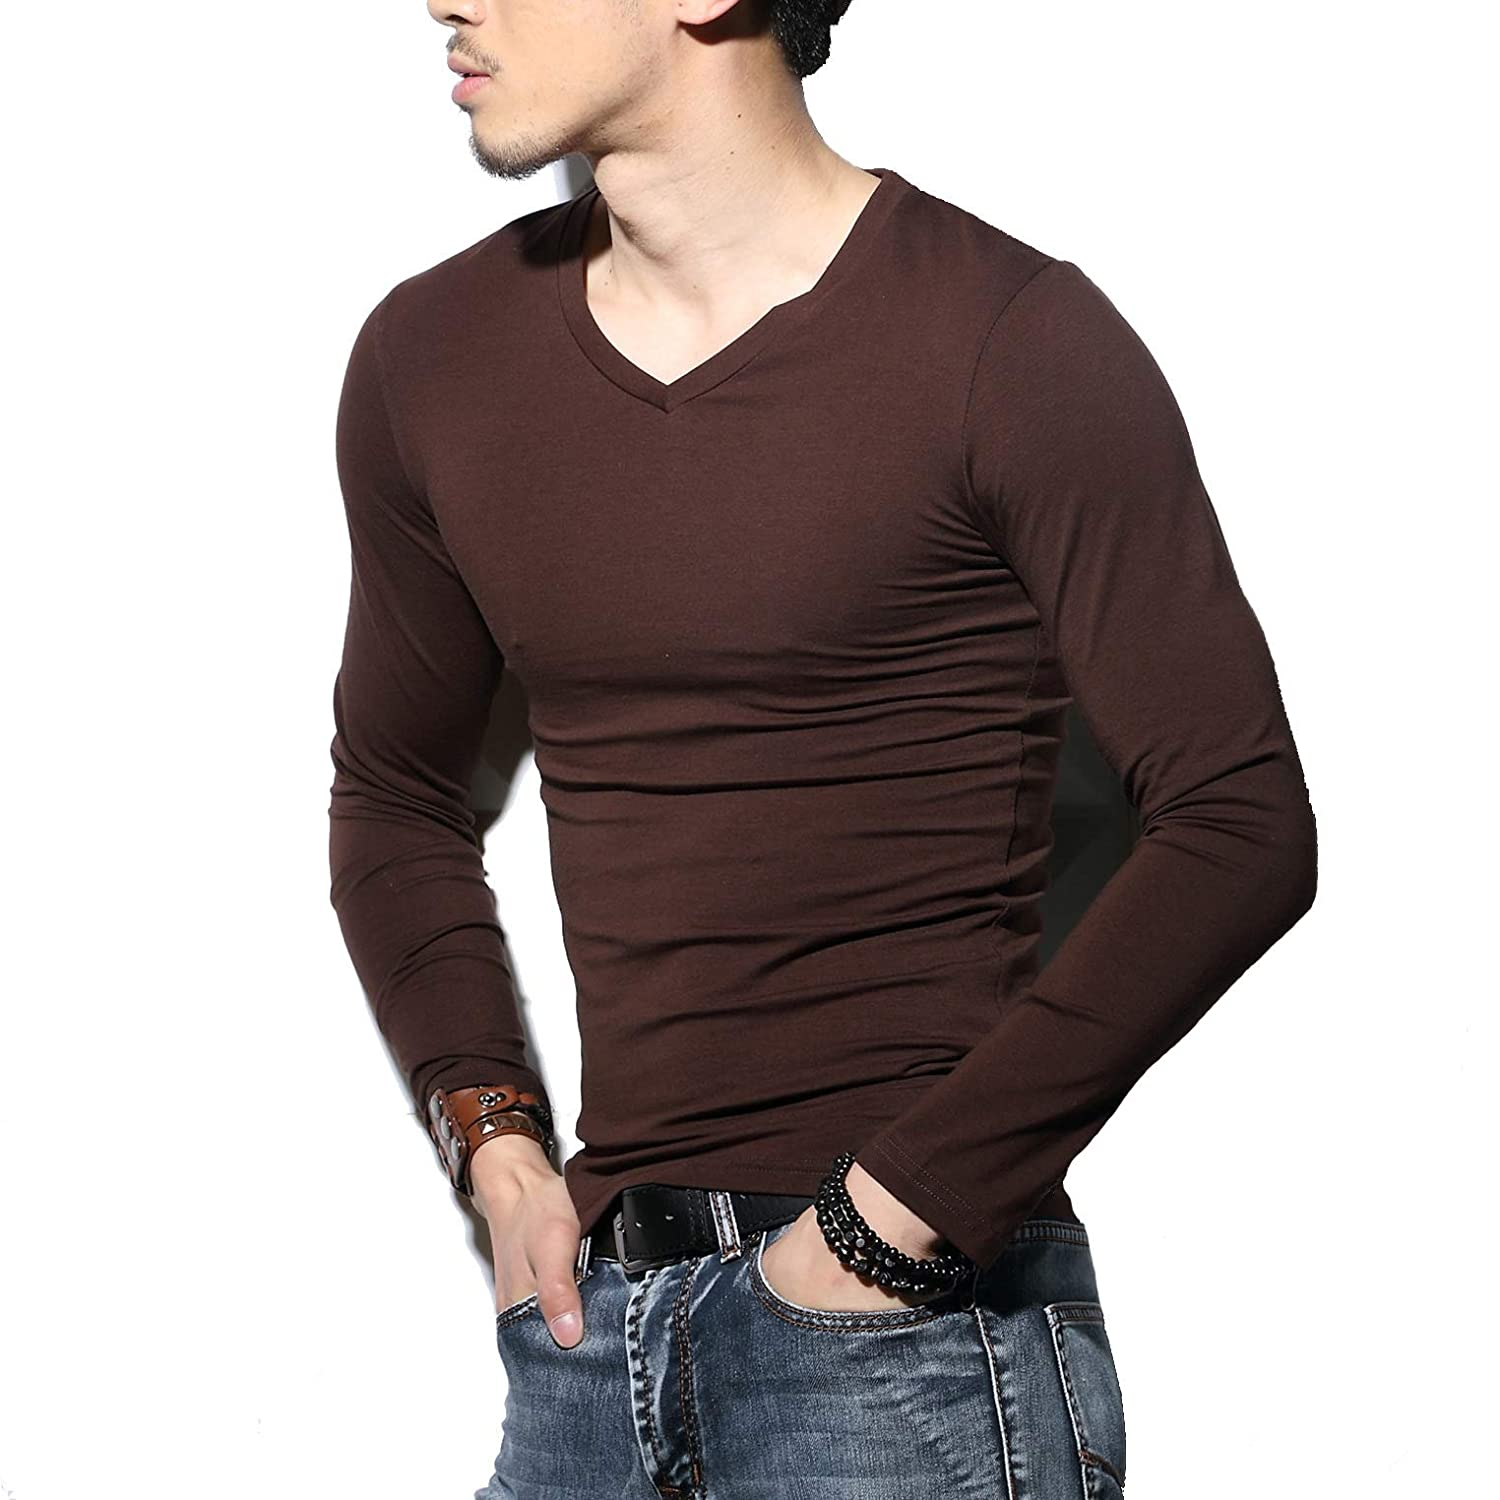 Sunshine Code Men's Tagless Slim Fit Top Muscle Cotton V-Neck Long Sleeve Undershirts T-Shirts scmshirt03